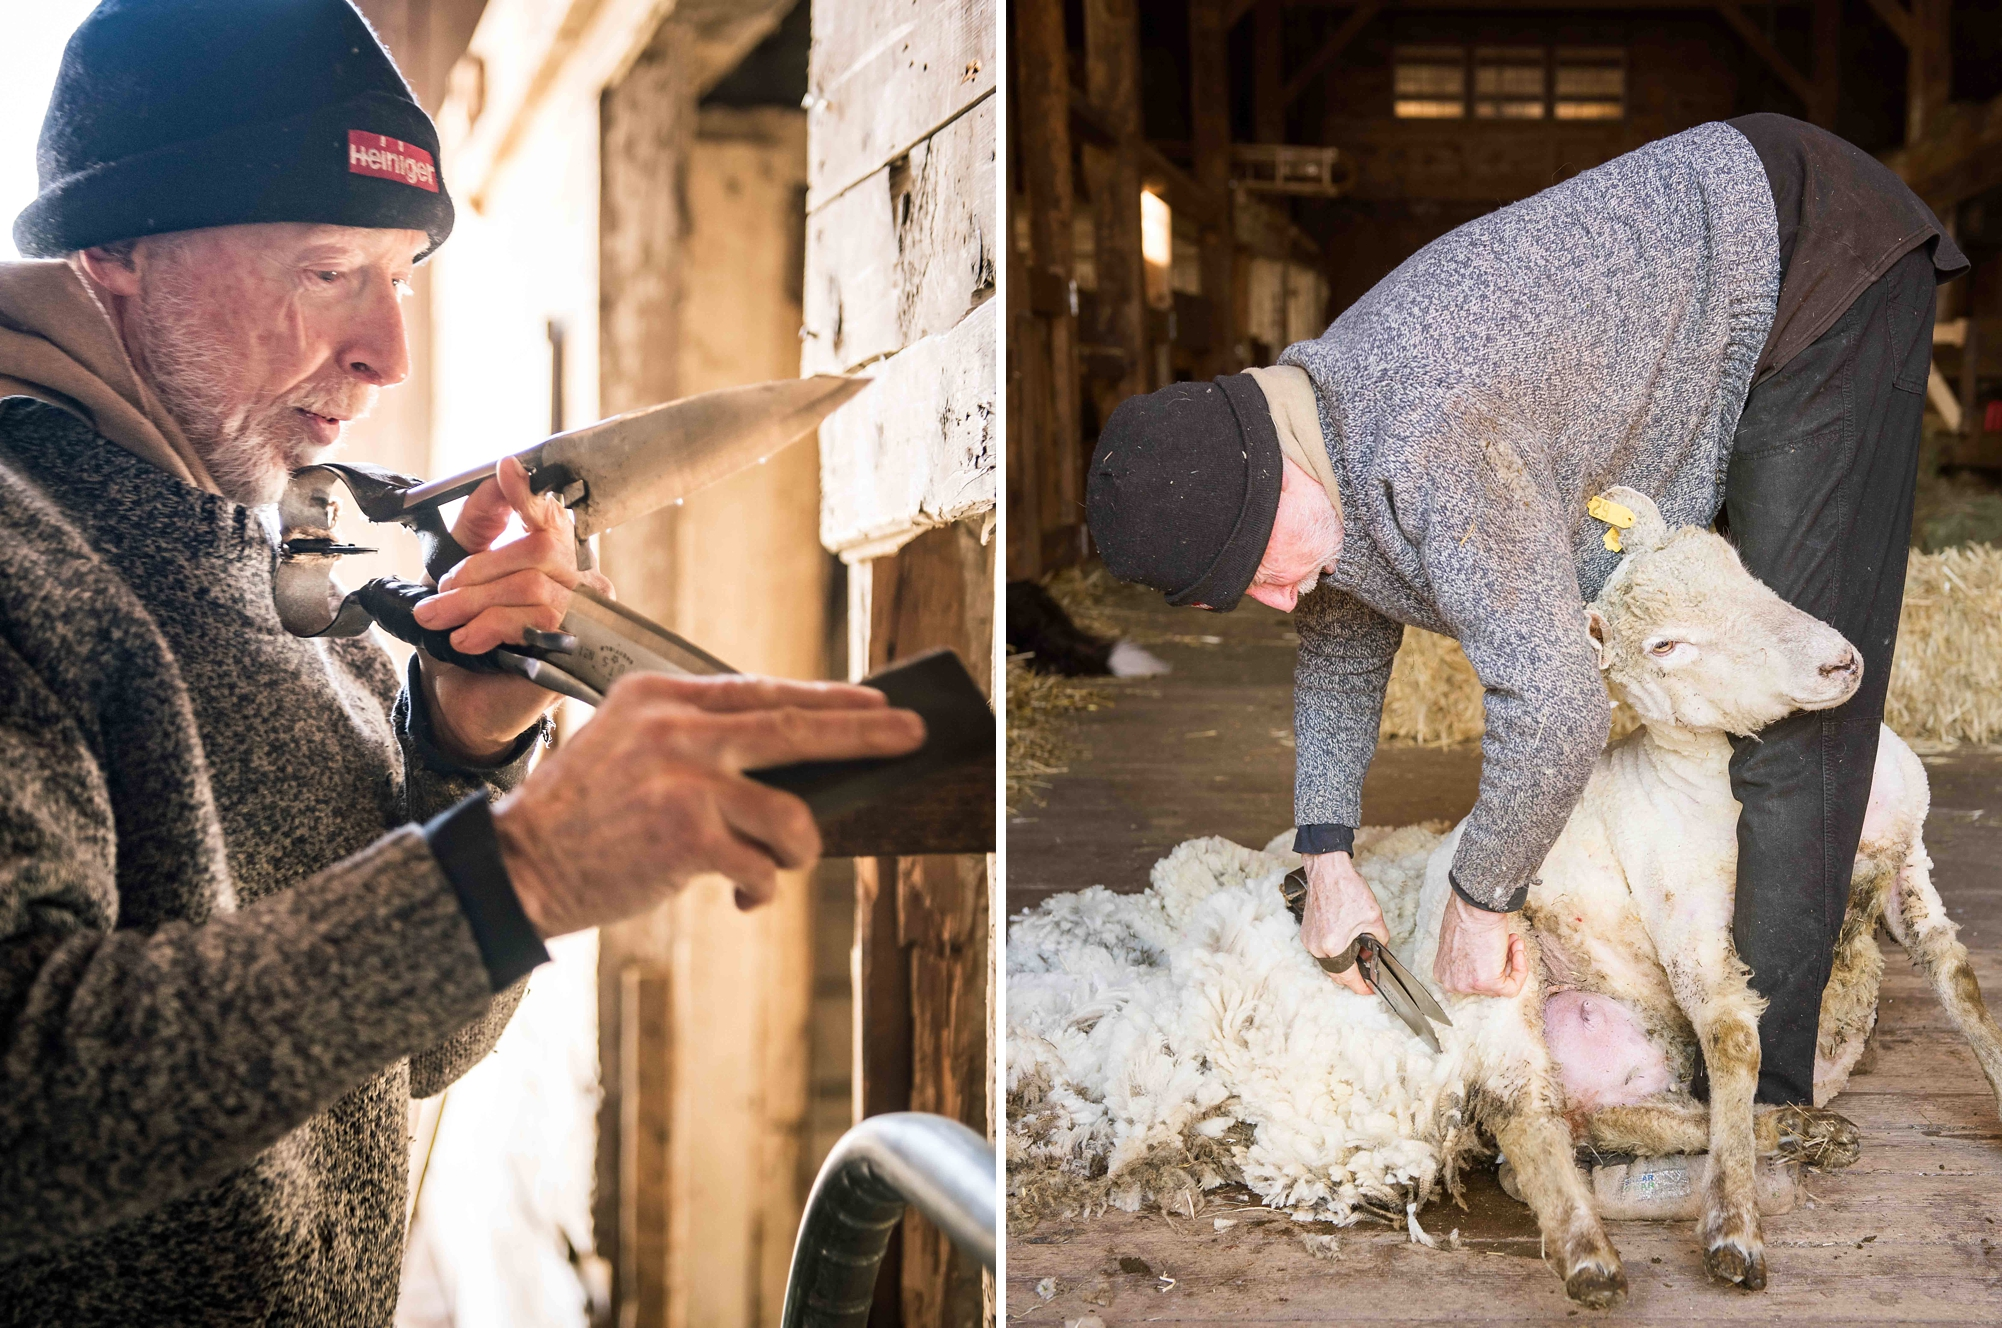 L: Mr. Ford sharpens his blades between each shearing. R: The ewes are so patient and calm as Mr. Ford quietly works.